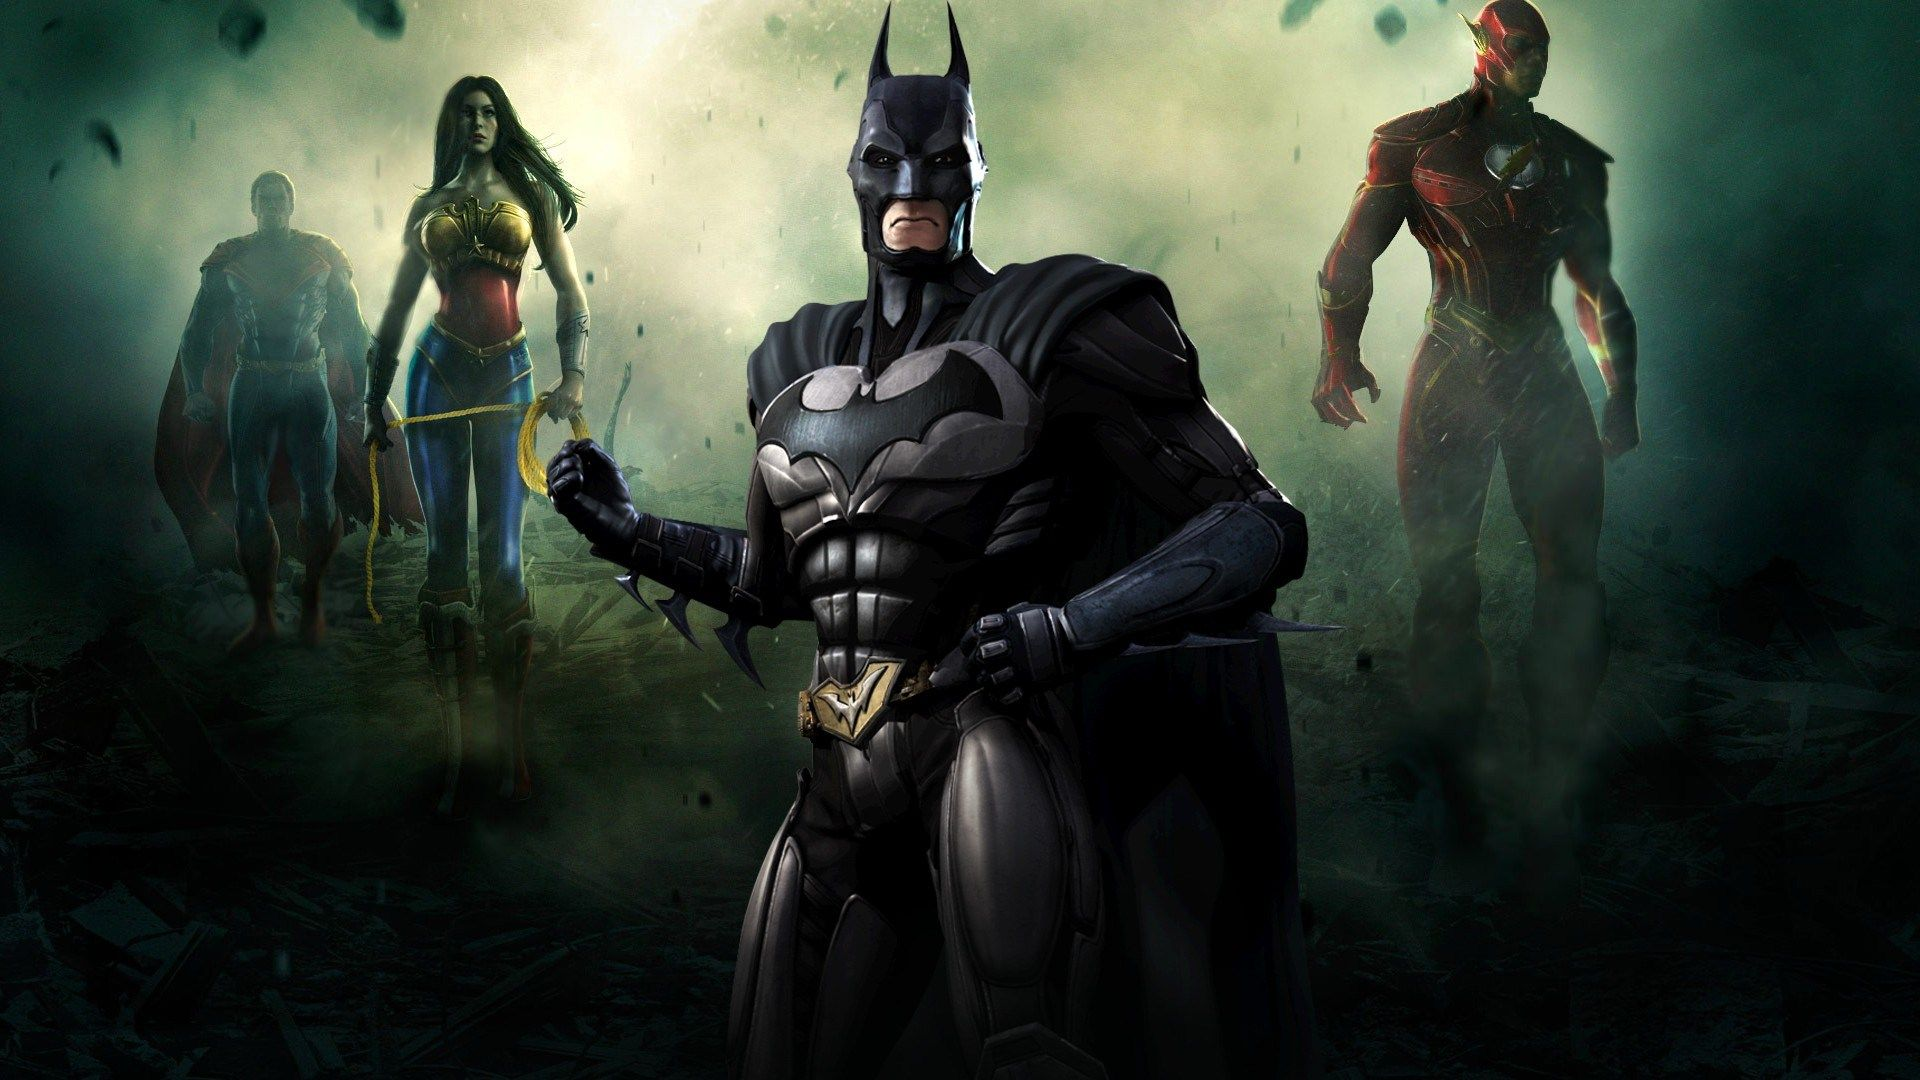 1920x1080 Px Best Injustice Gods Among Us Wallpaper By Fern Gill For Trunkweed Com Vilas Herois